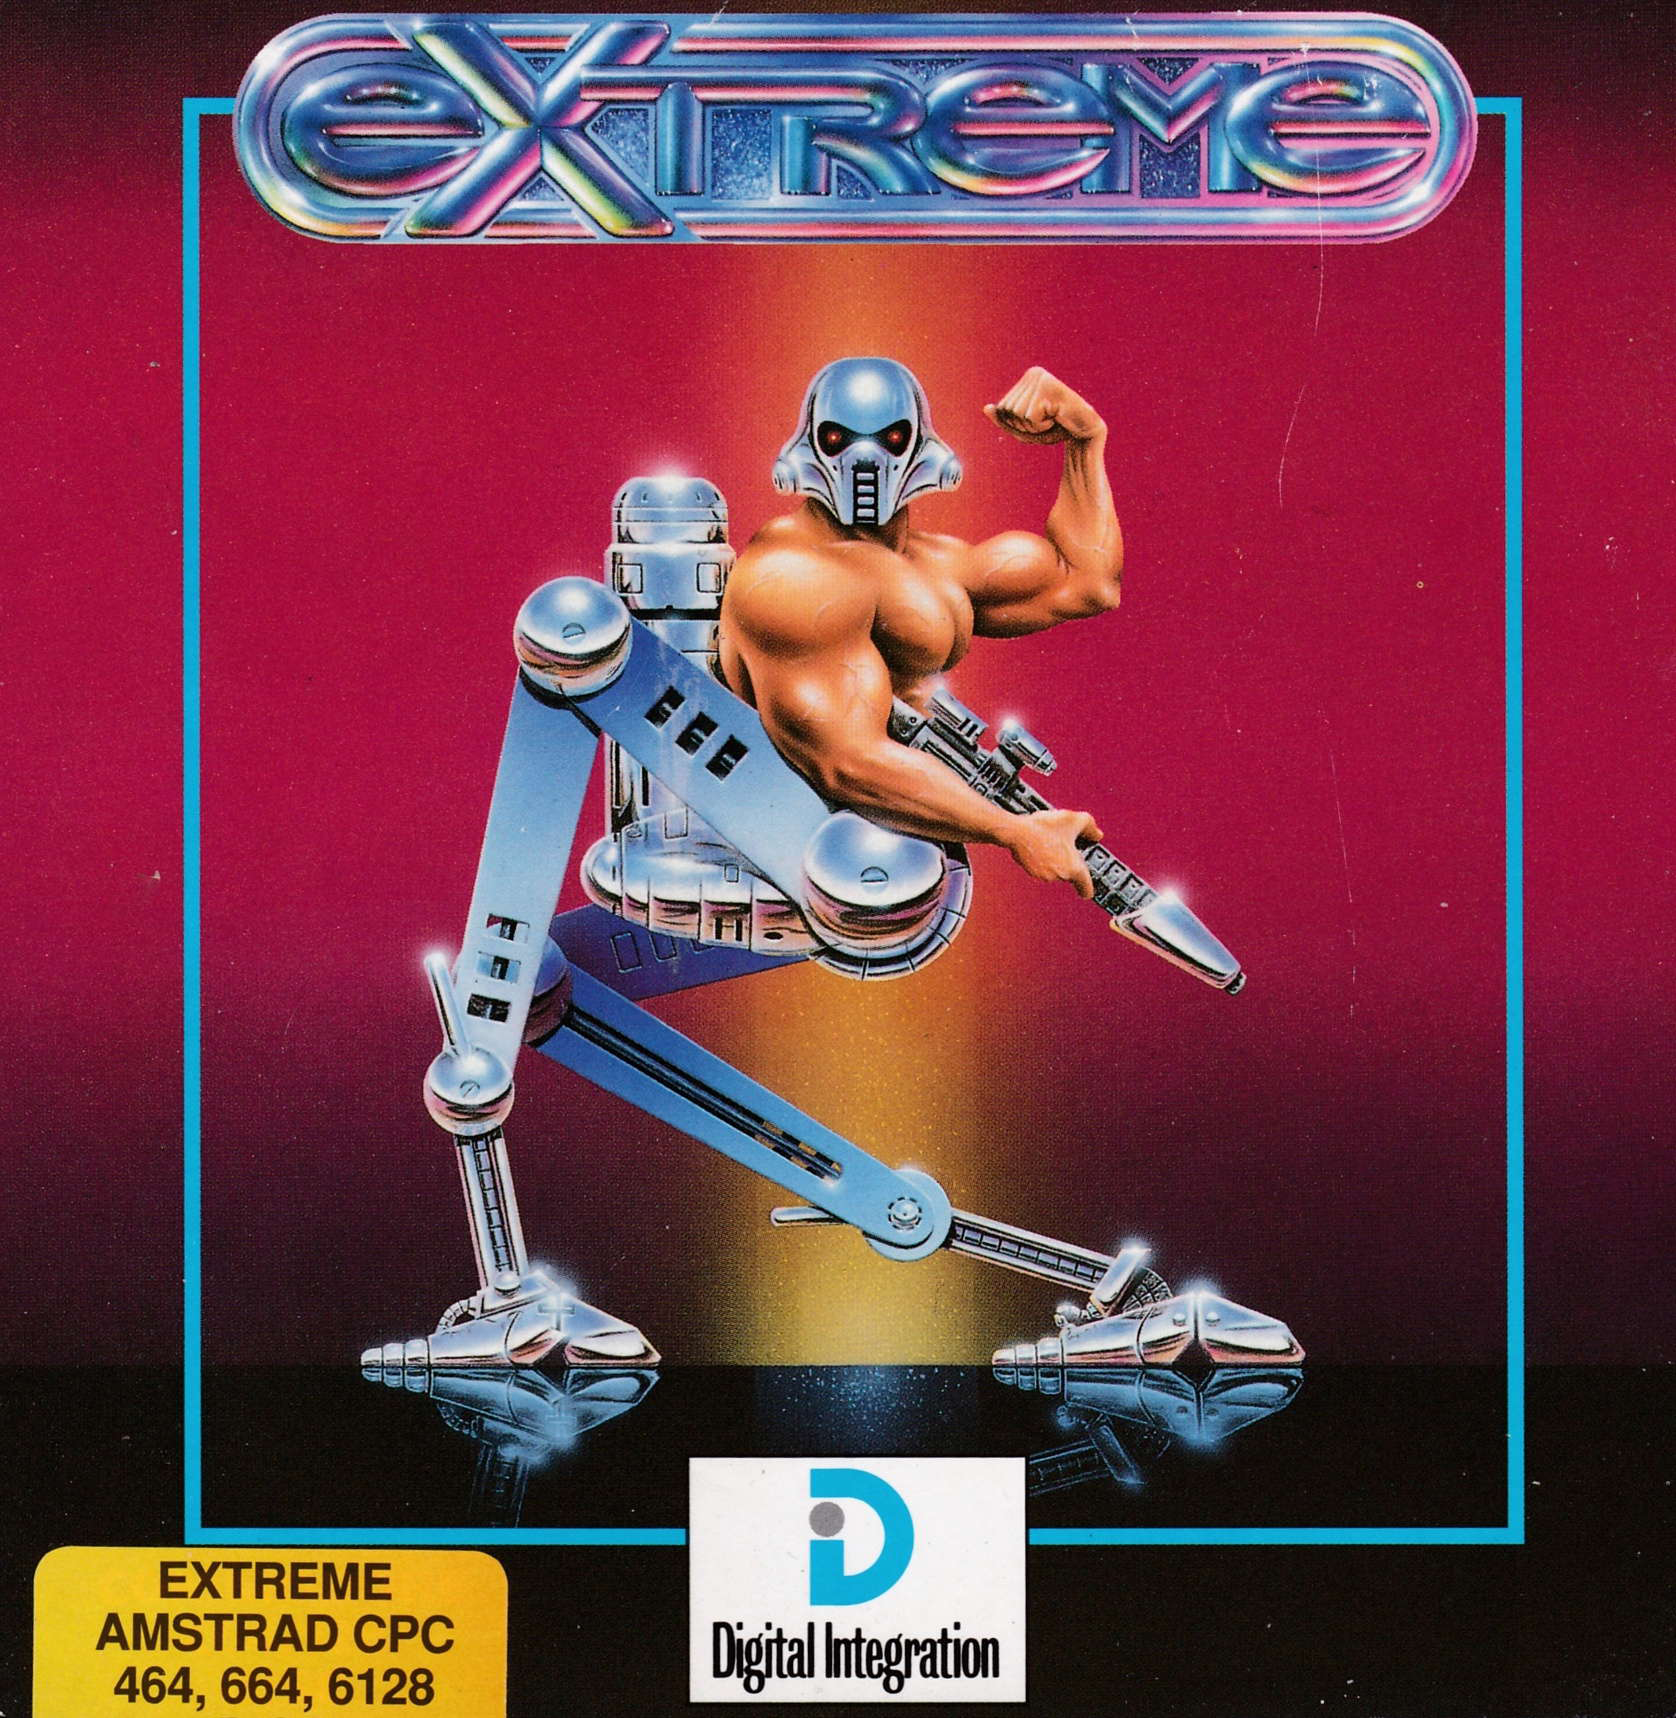 cover of the Amstrad CPC game Extreme  by GameBase CPC